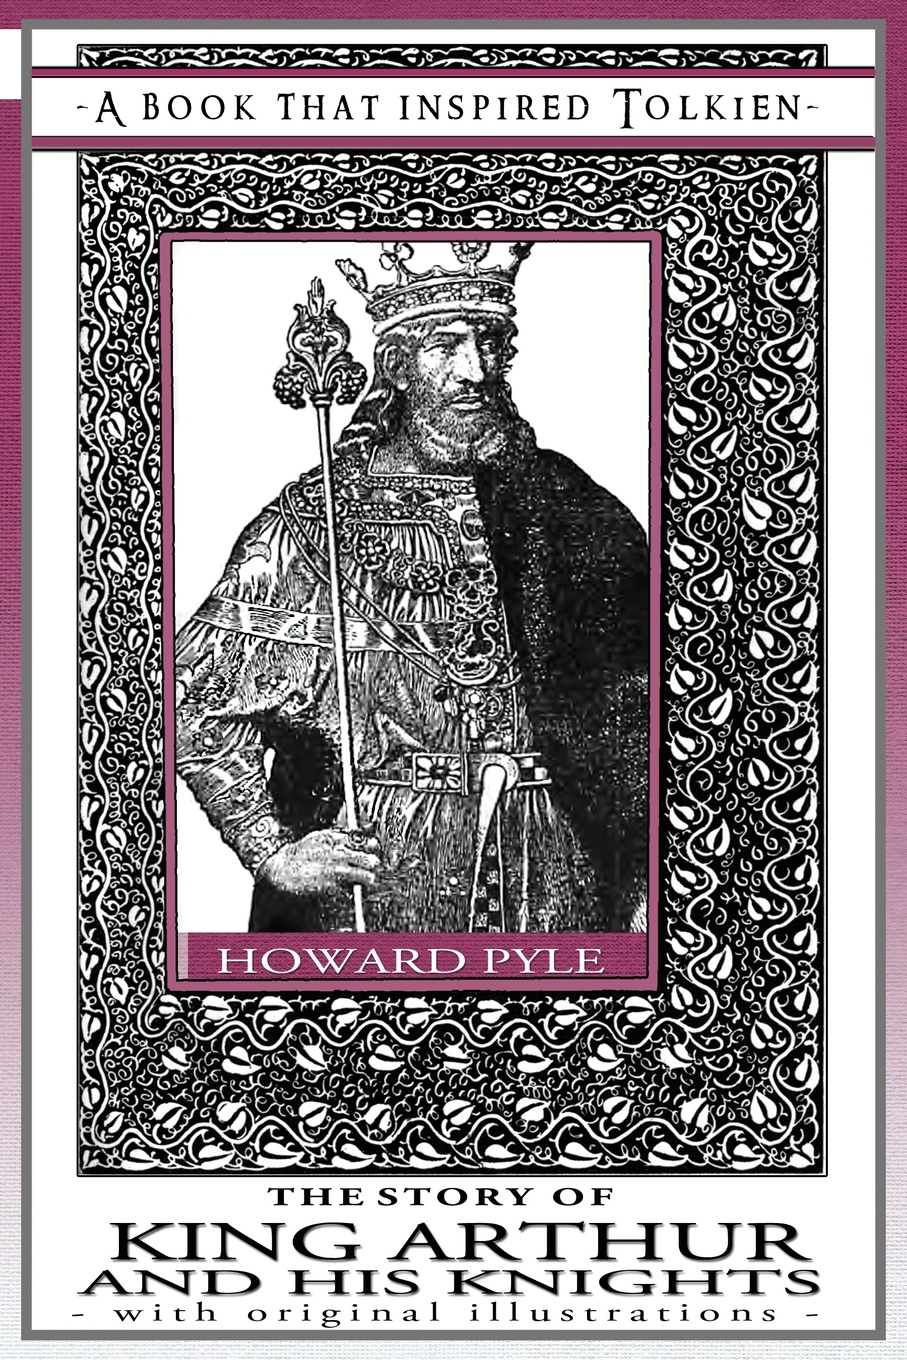 Howard Pyle The Story of King Arthur and His Knights - A Book That Inspired Tolkien. With Original Illustrations tolkien j the return of the king the lord of the rings ч 3